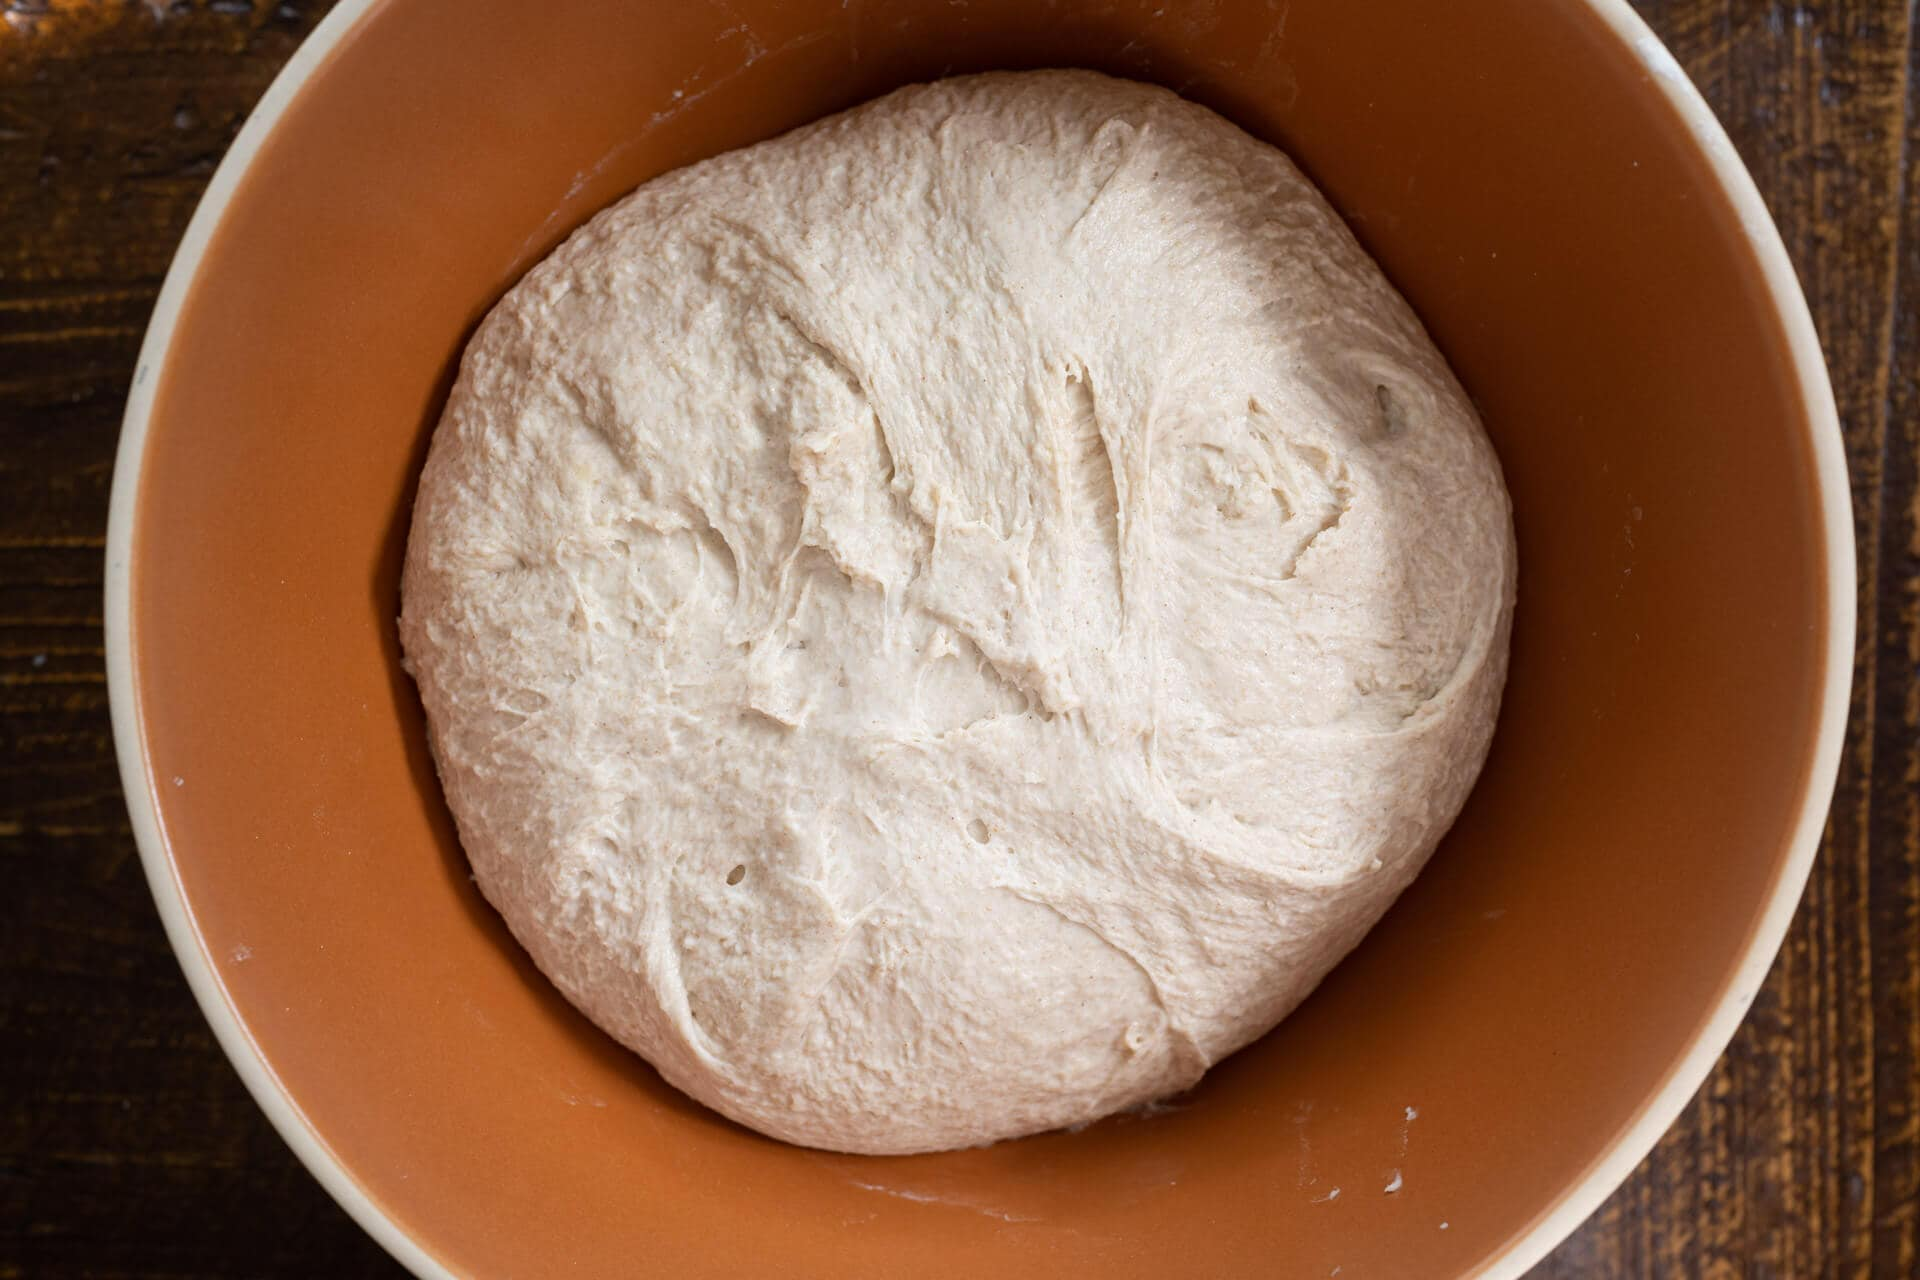 Sourdough Sandwich Bread With Pre-Cooked Flour after mixing